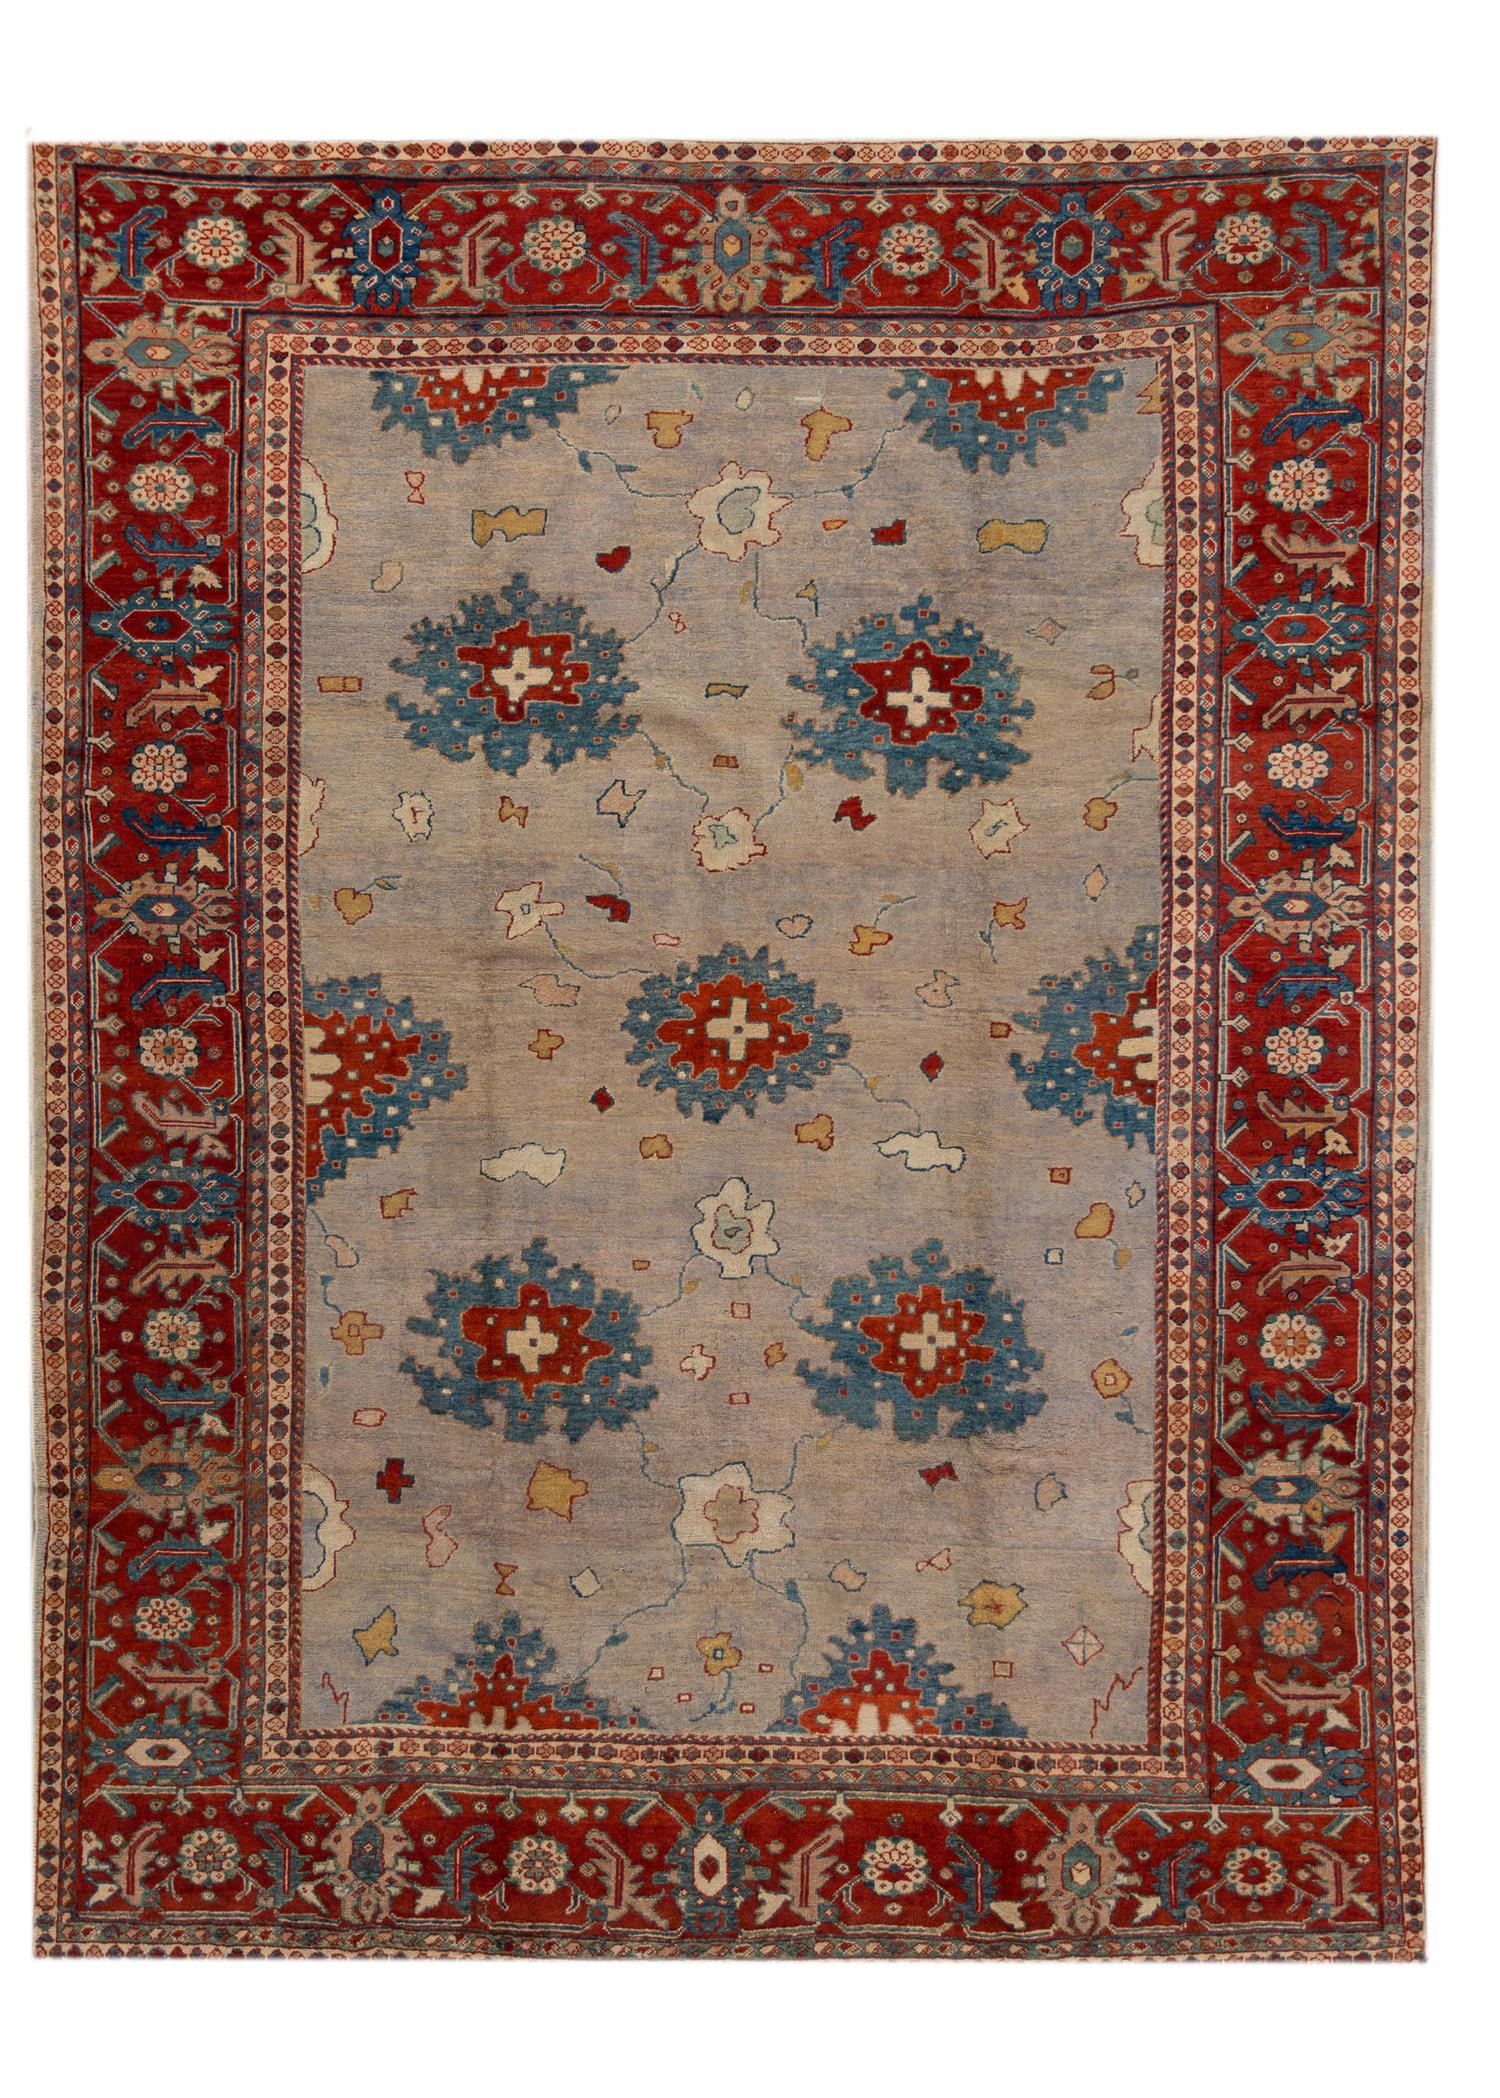 Antique Persian Mahal Rug, 9X11